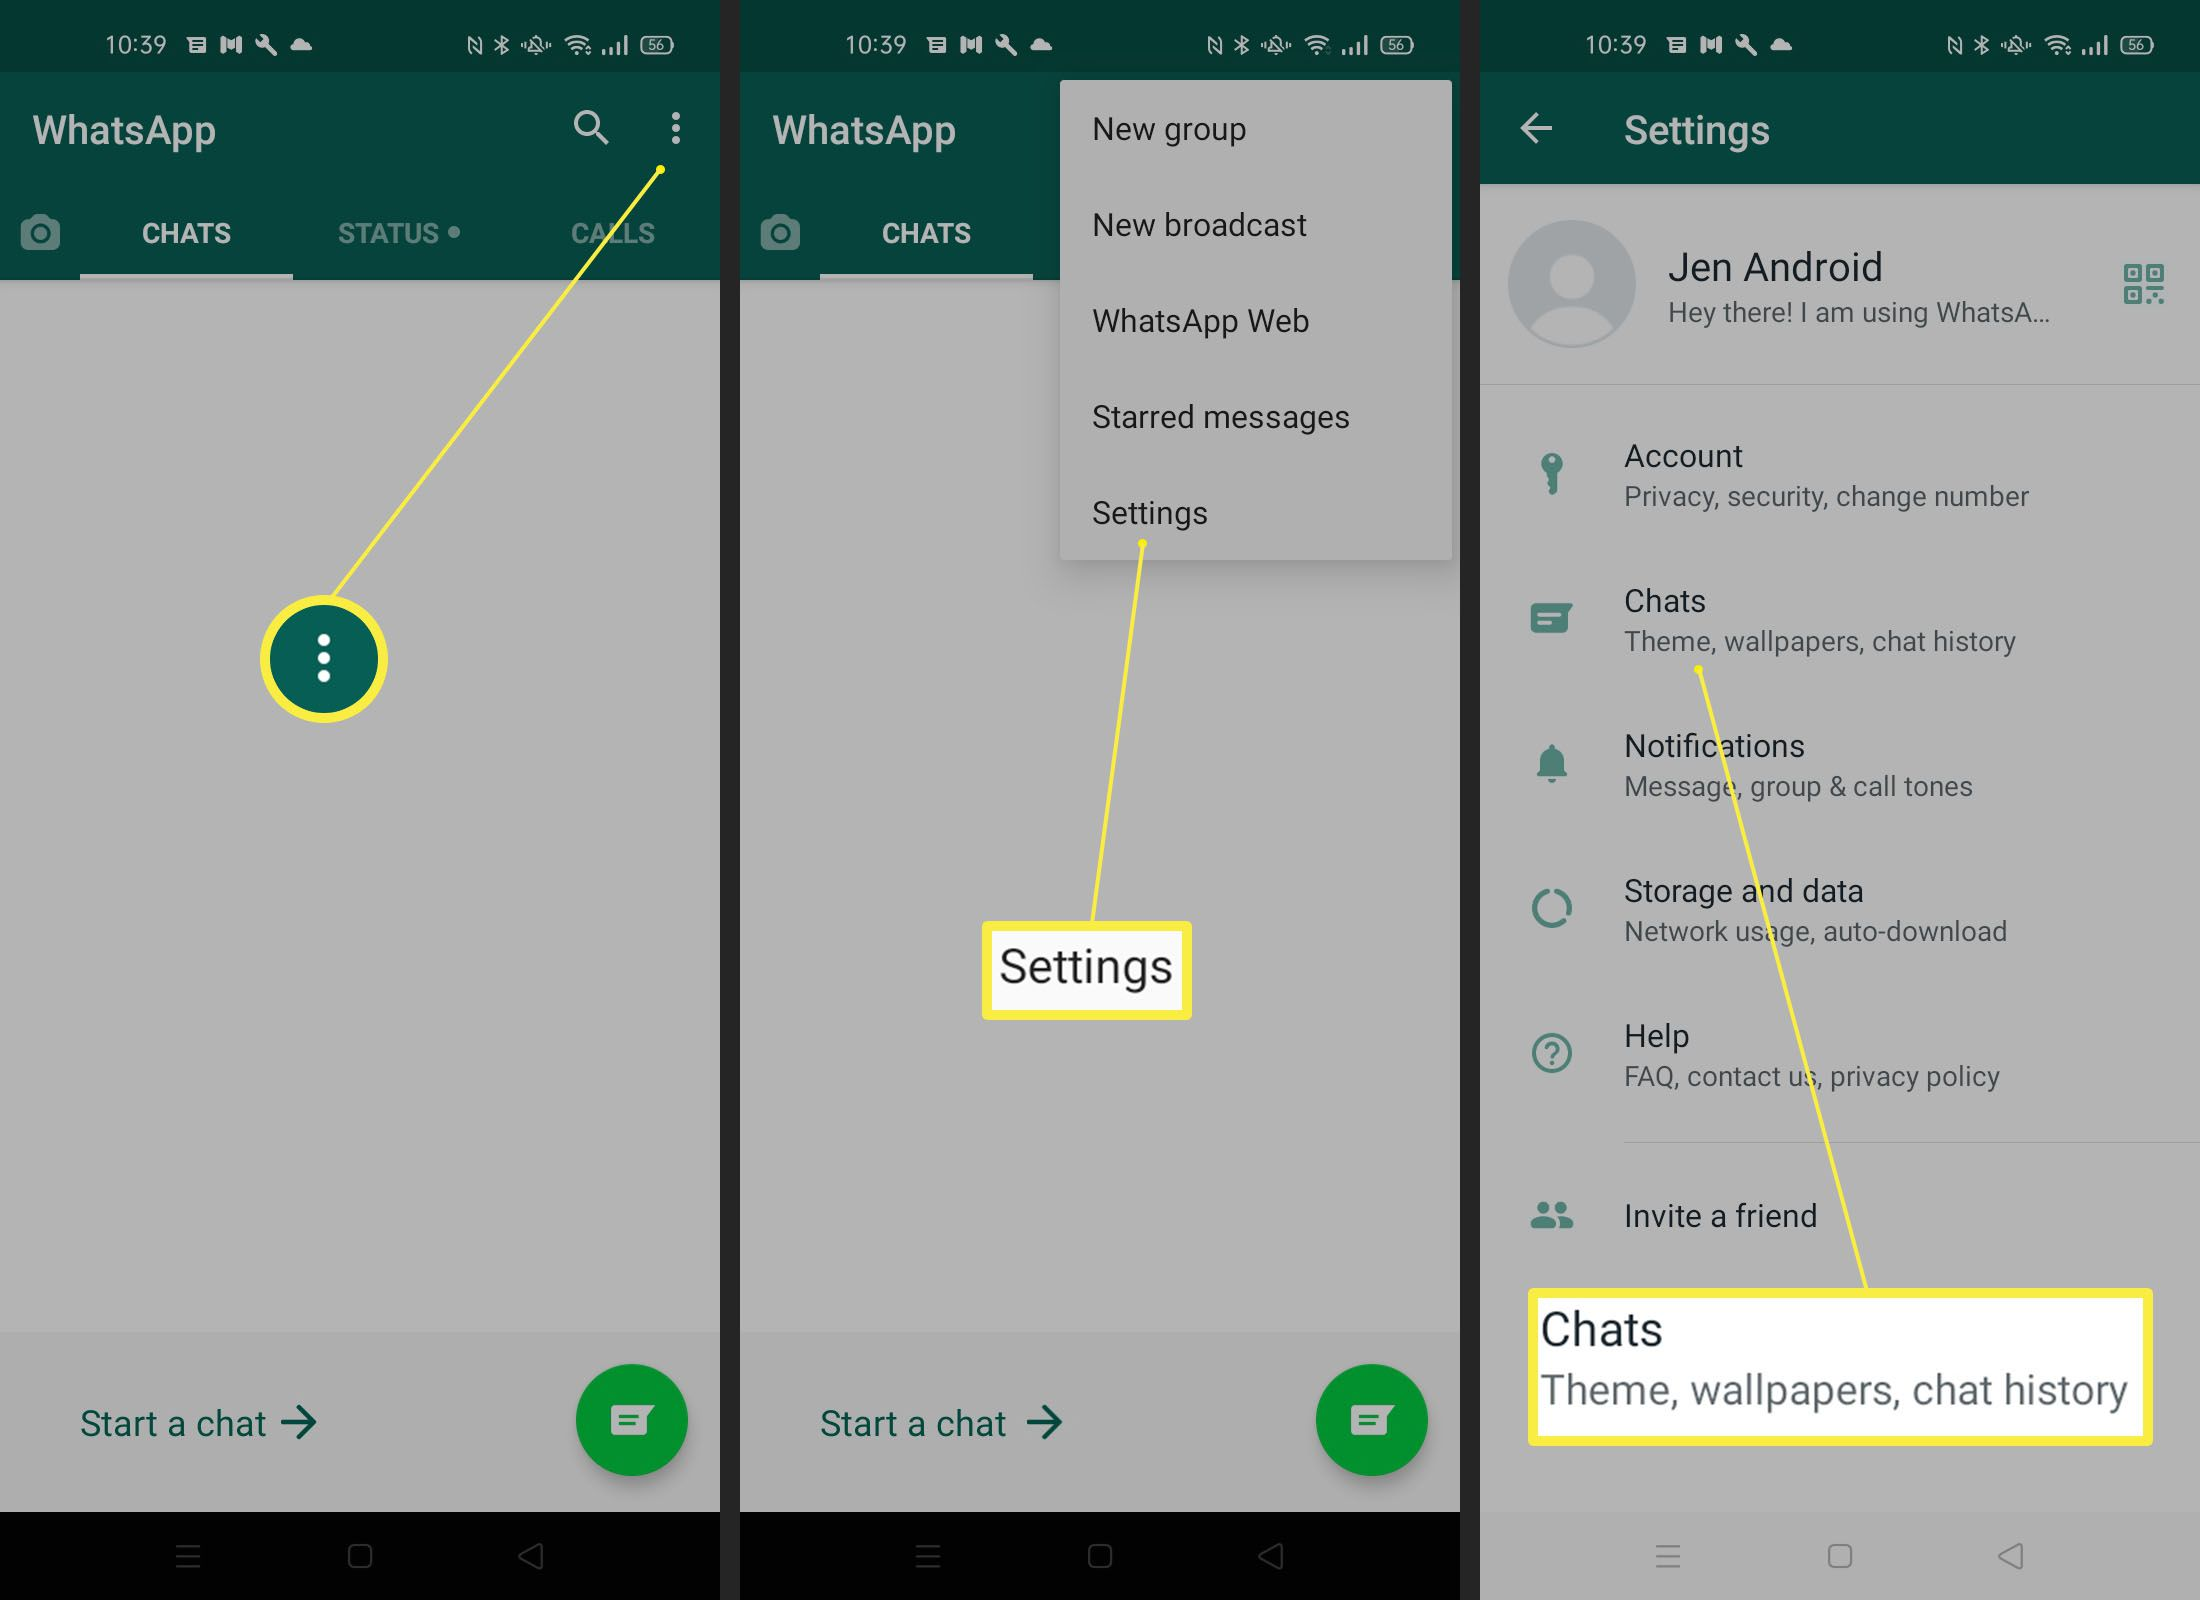 Steps needed to find Chat wallpaper settings on WhatsApp Android